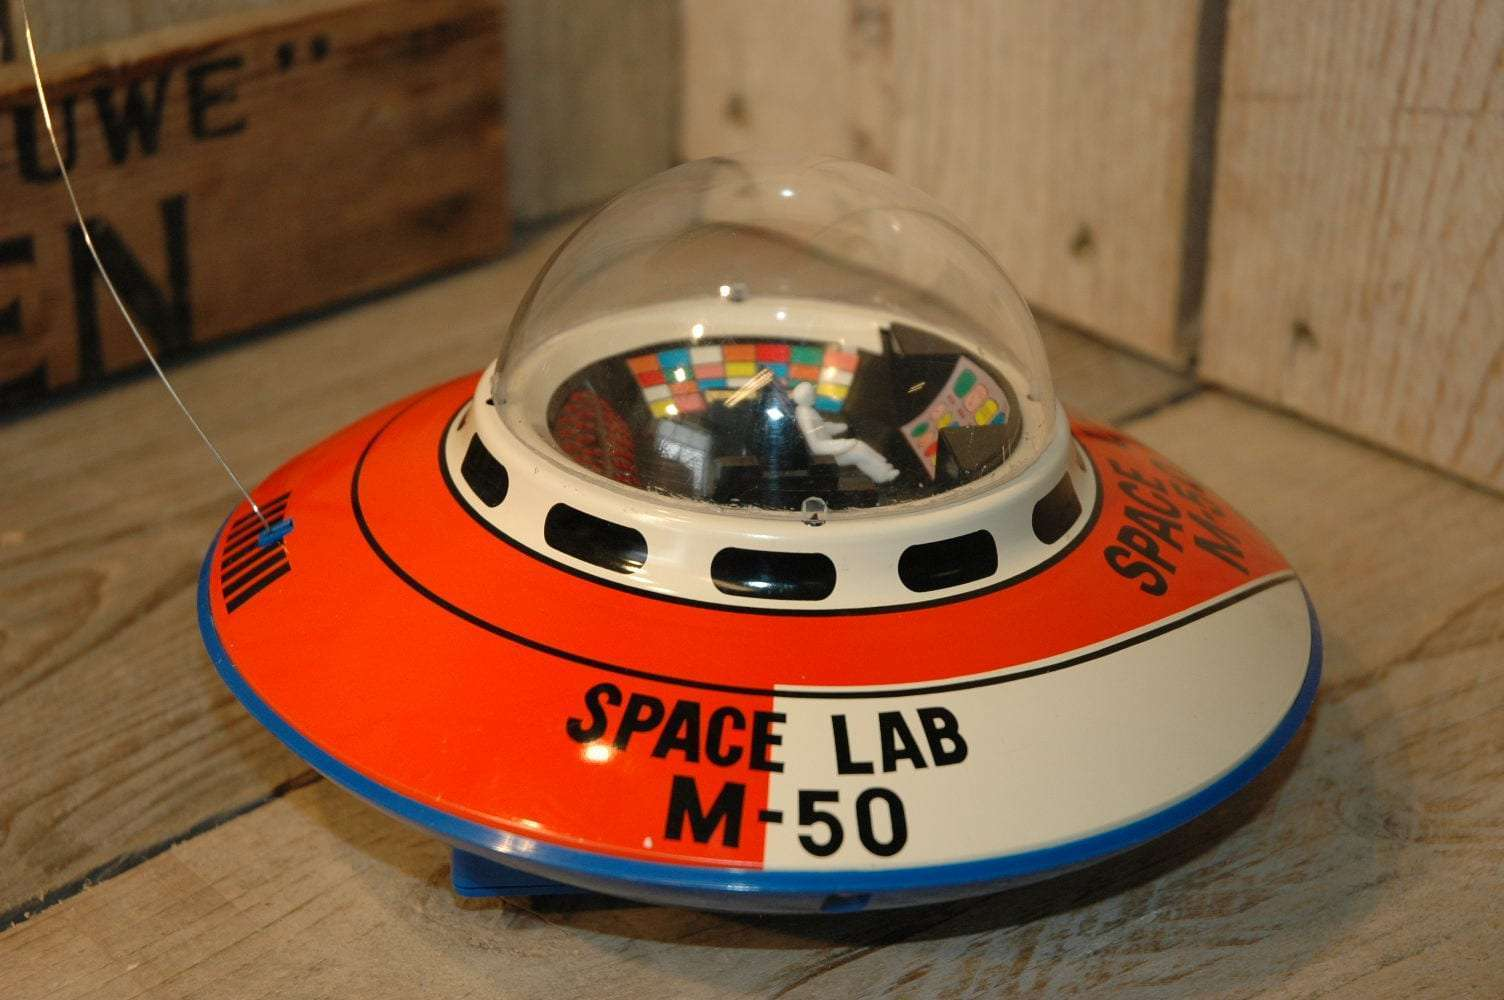 Modern Toys - Space Lab M-50 1973